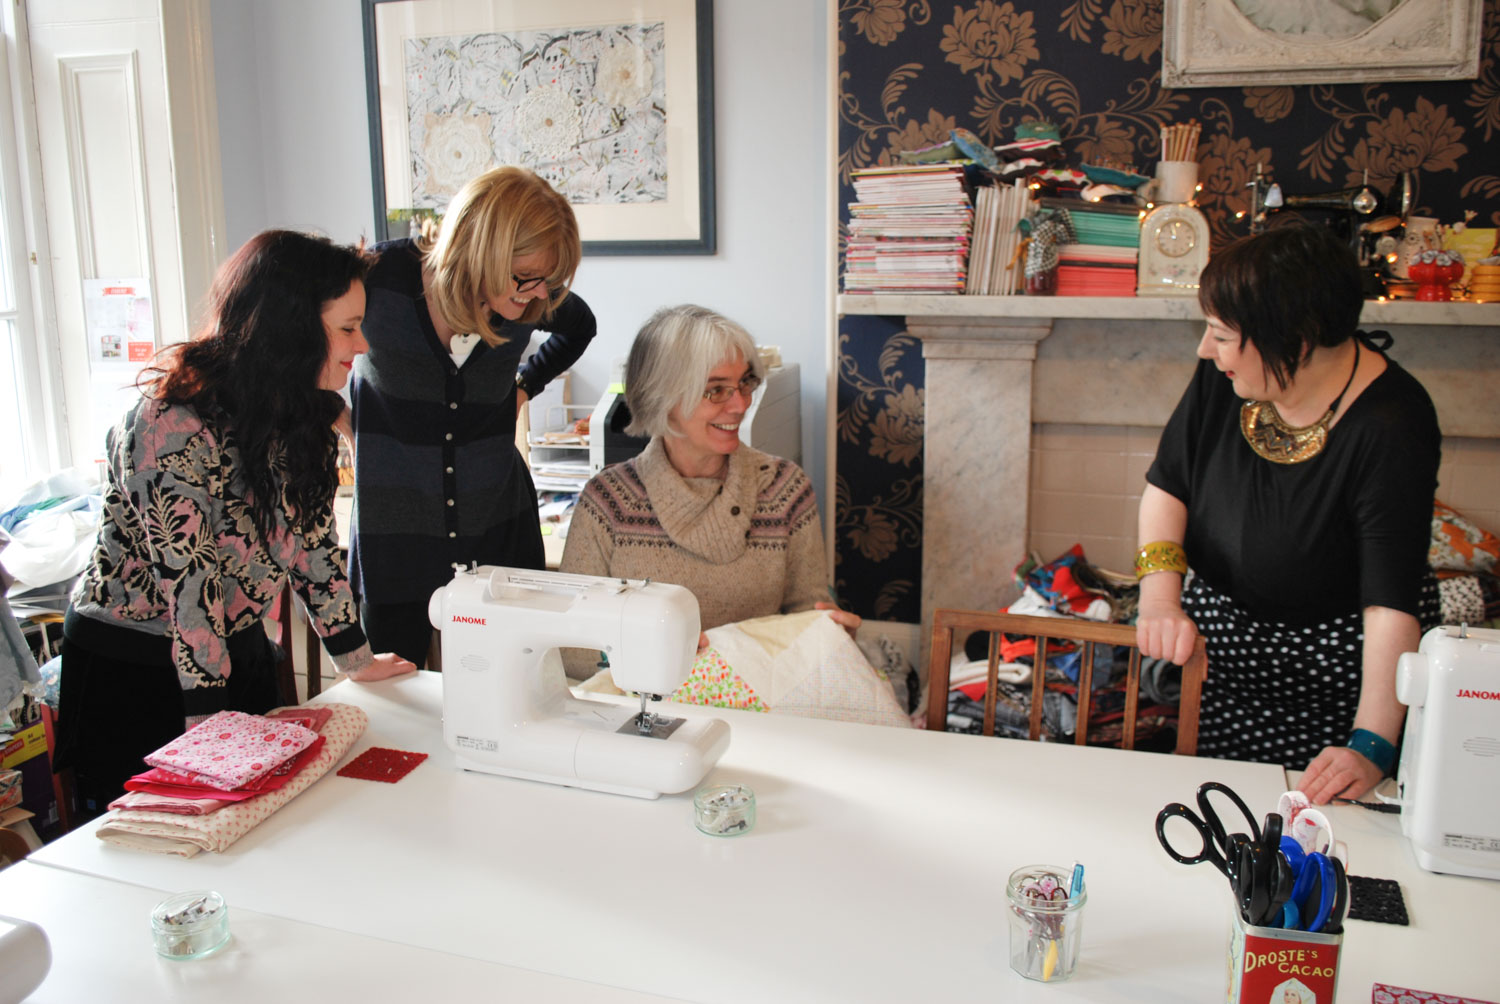 Some quilters from our course here at The Stitchery (actually this is from when we used to have the studio in our flat!)